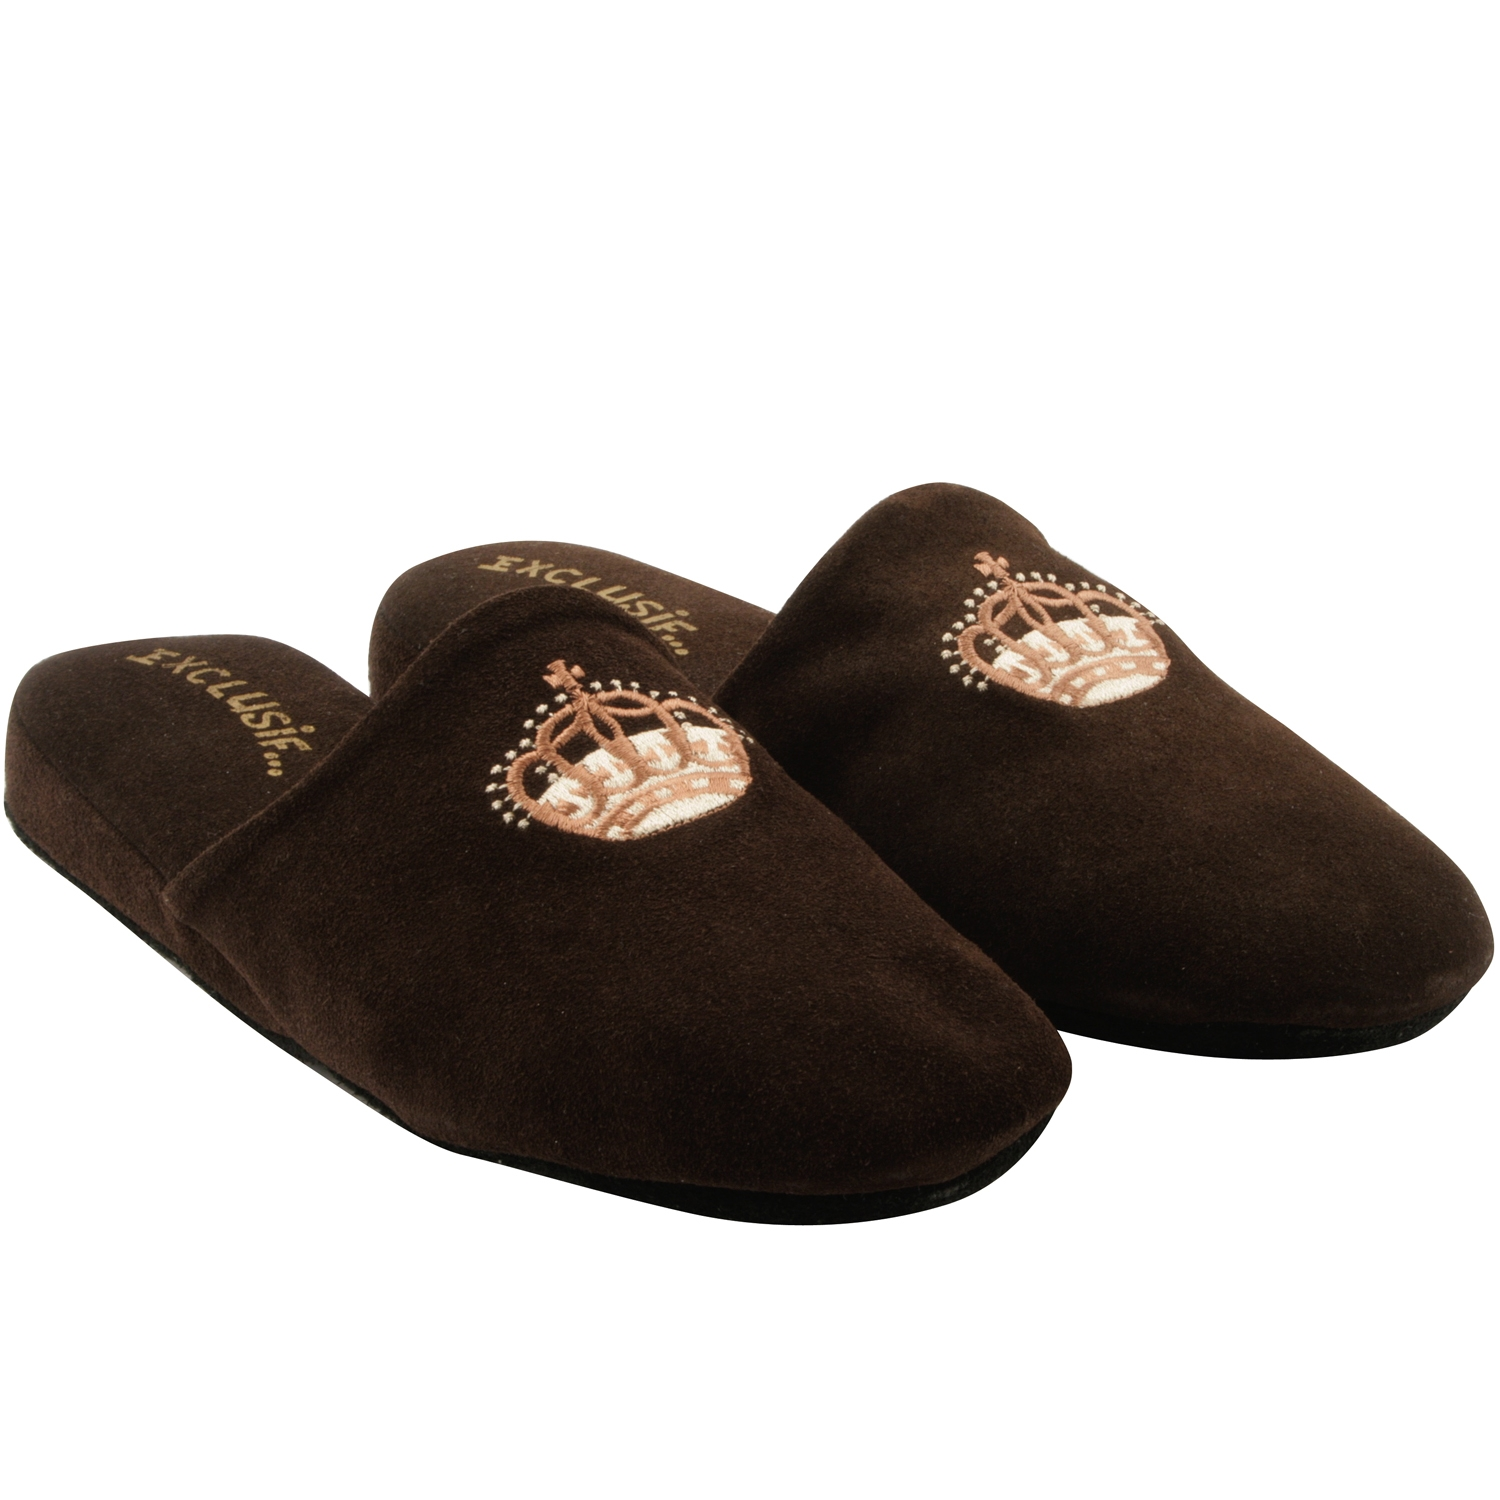 Exclusif Paris Windsor - Chaussons en cuir - marron